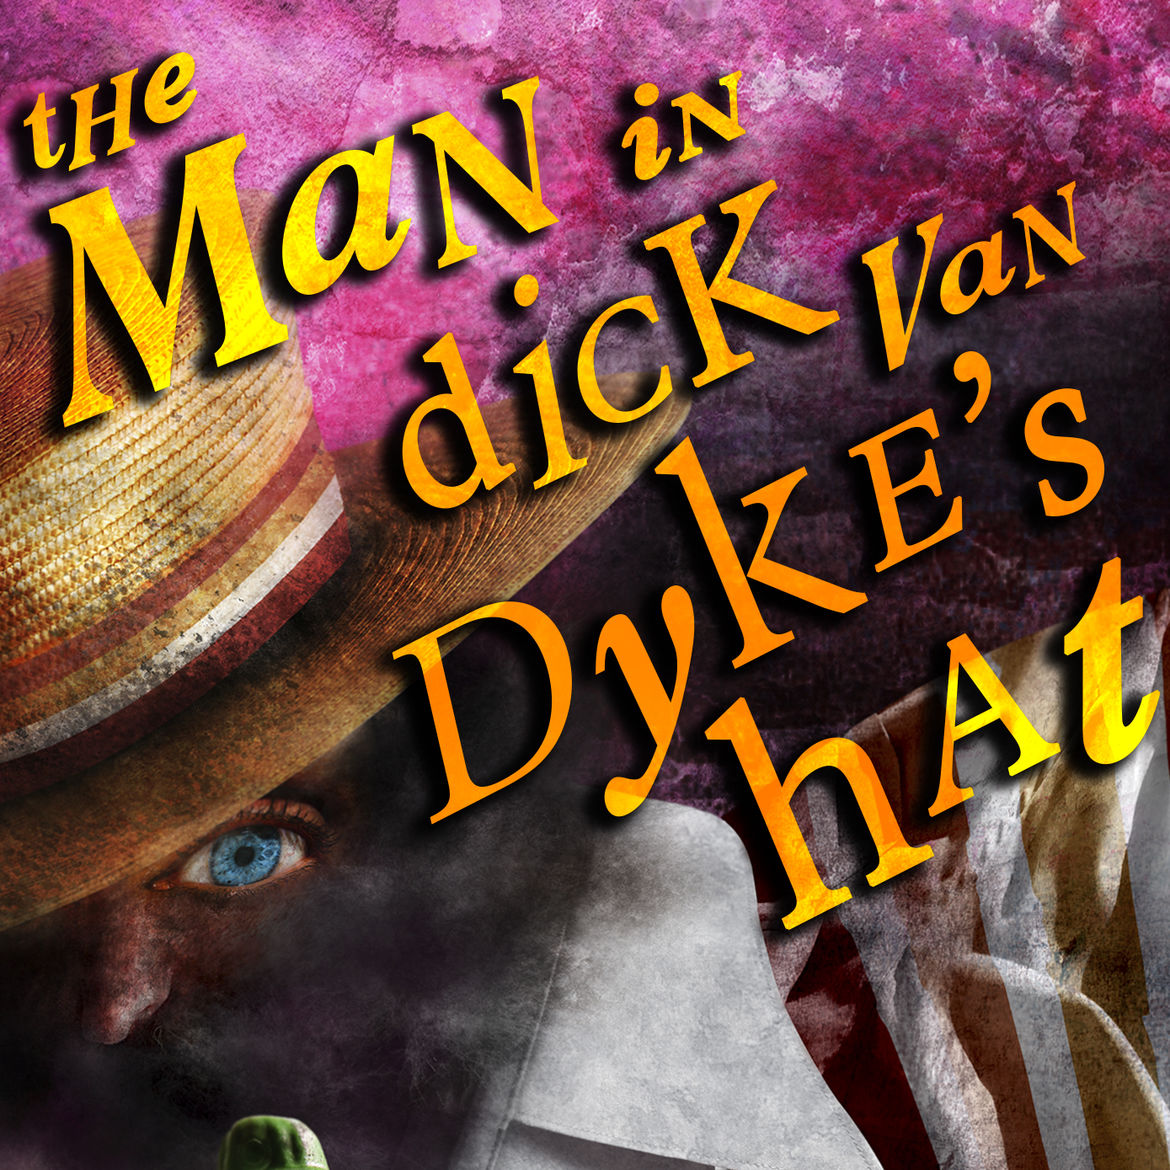 Cover Photo: The Man in Dick Van Dyke's Hat by Mark Nobles